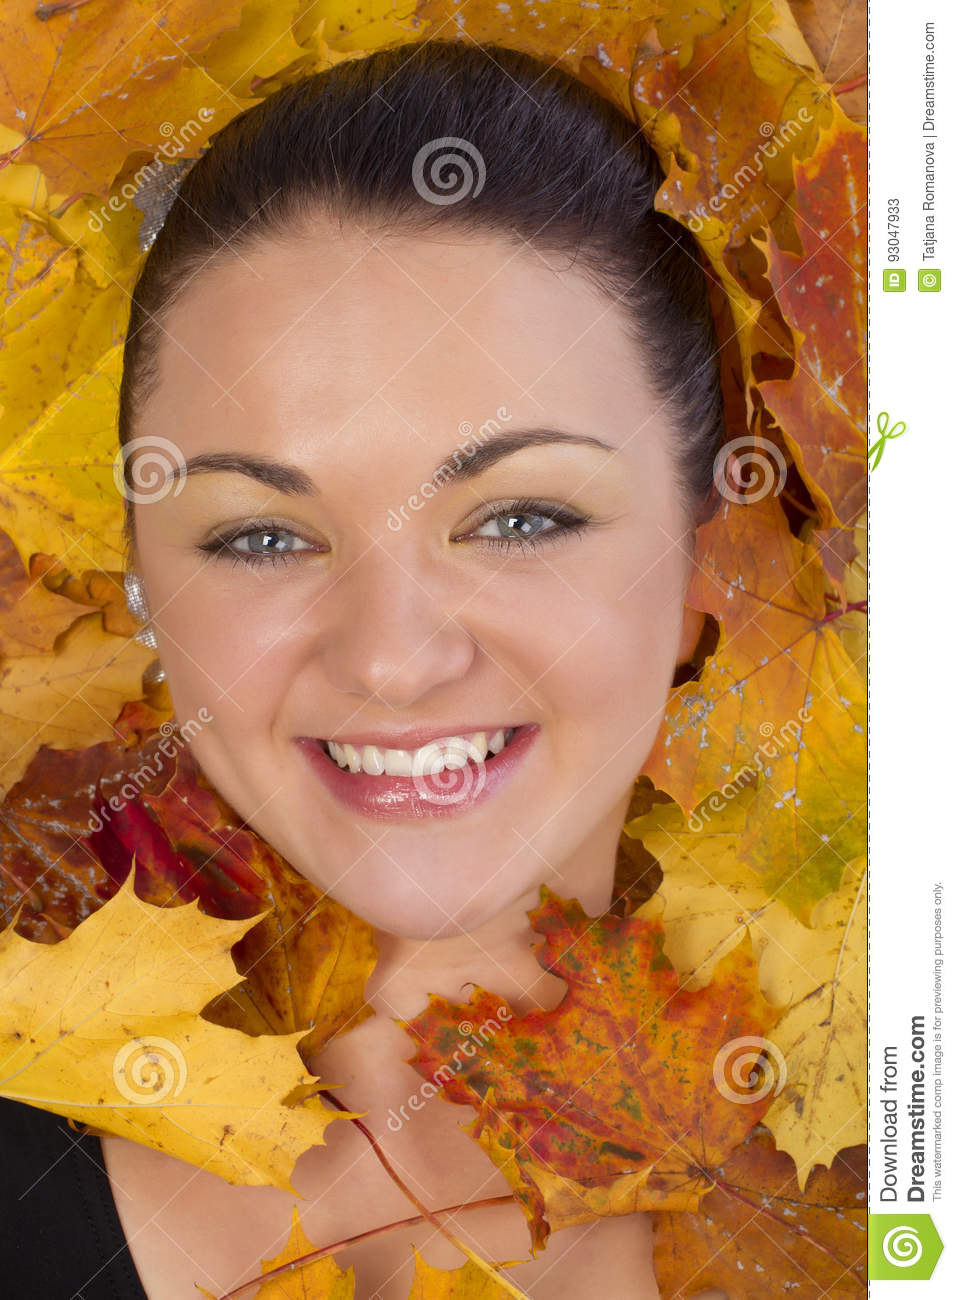 Close up of woman face in autumn leaves